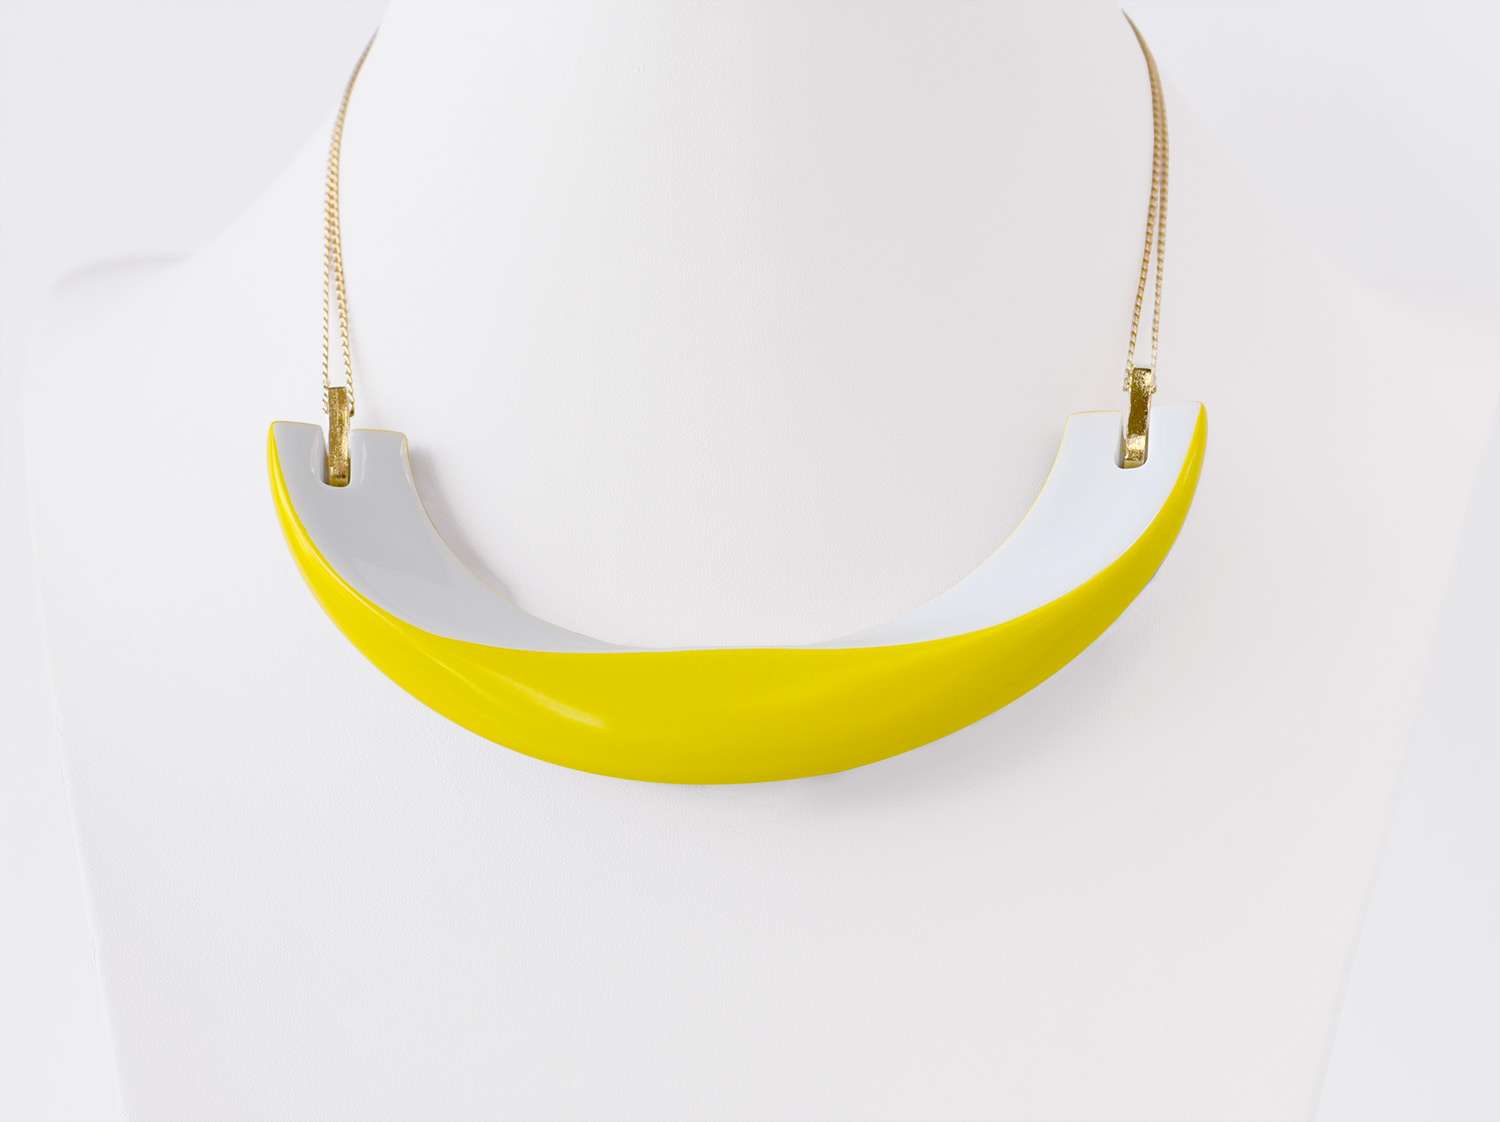 Collier Alba jaune en porcelaine de la collection ALBA JAUNE Bernardaud